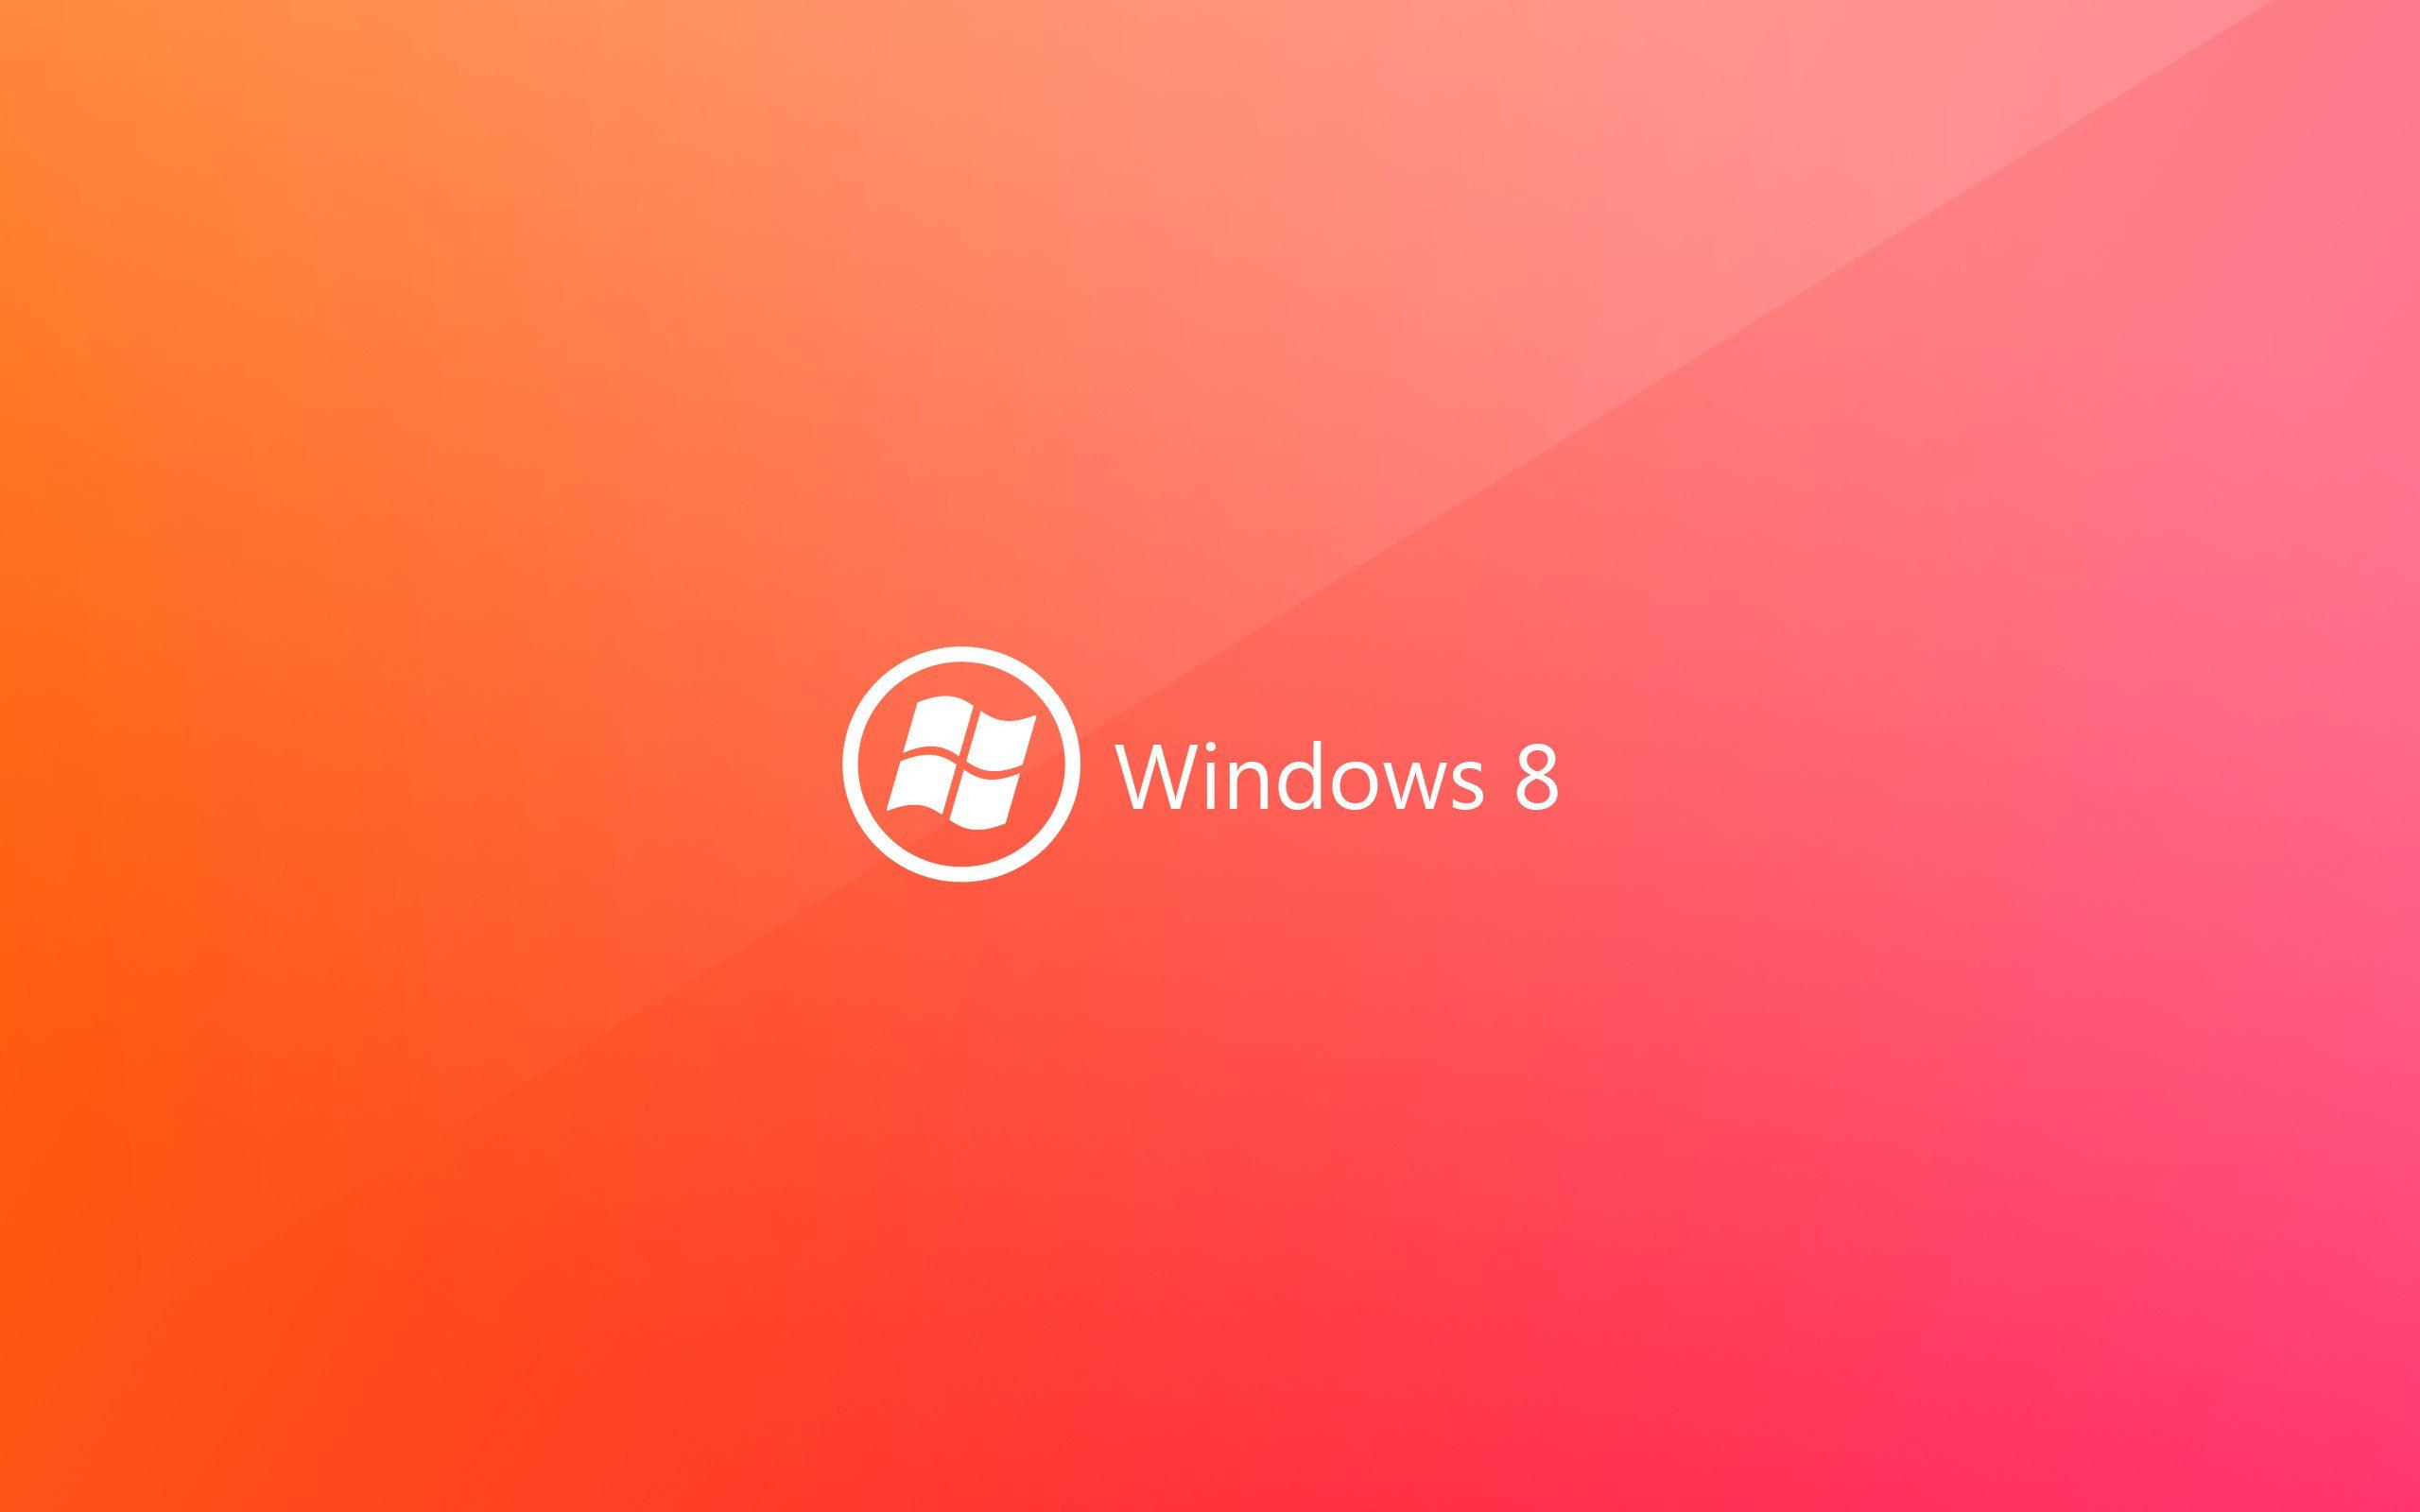 Windows 8 official wallpapers